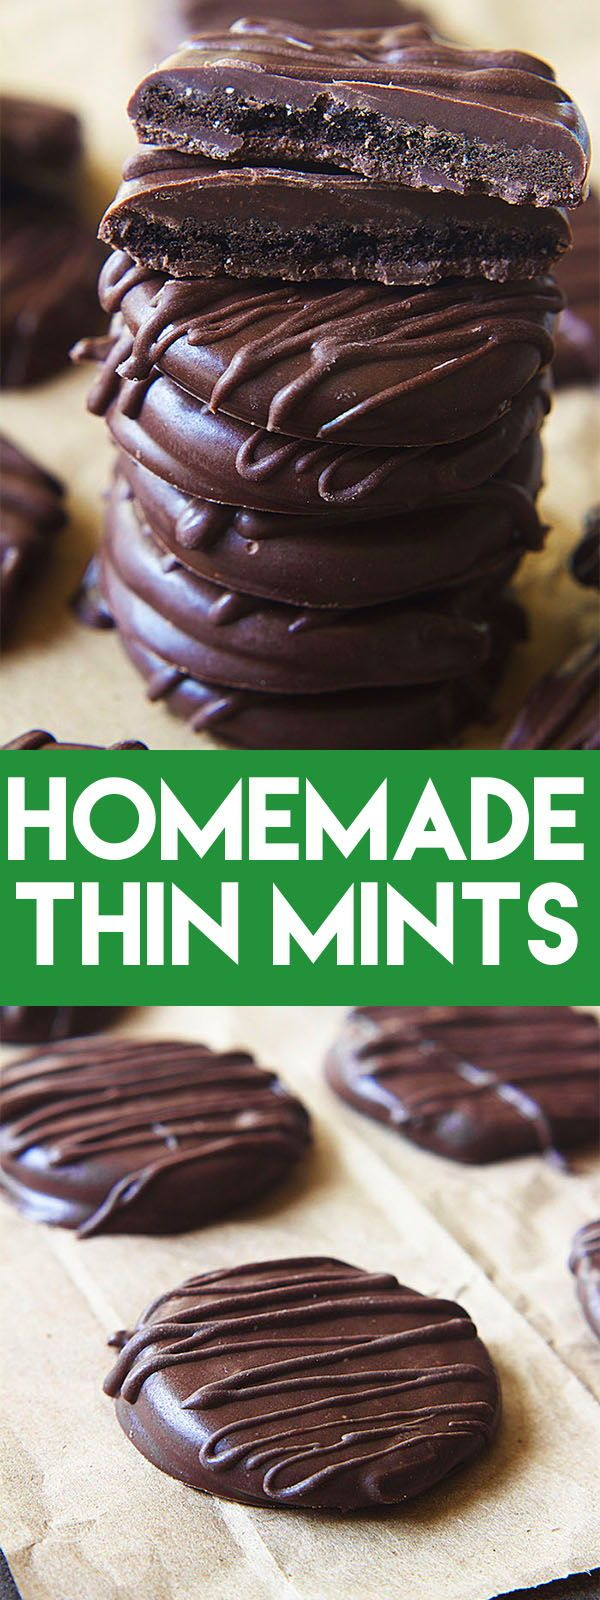 Homemade Thin Mints | Save this recipe because you're going to want it when Girl Scout Cookie season is over!